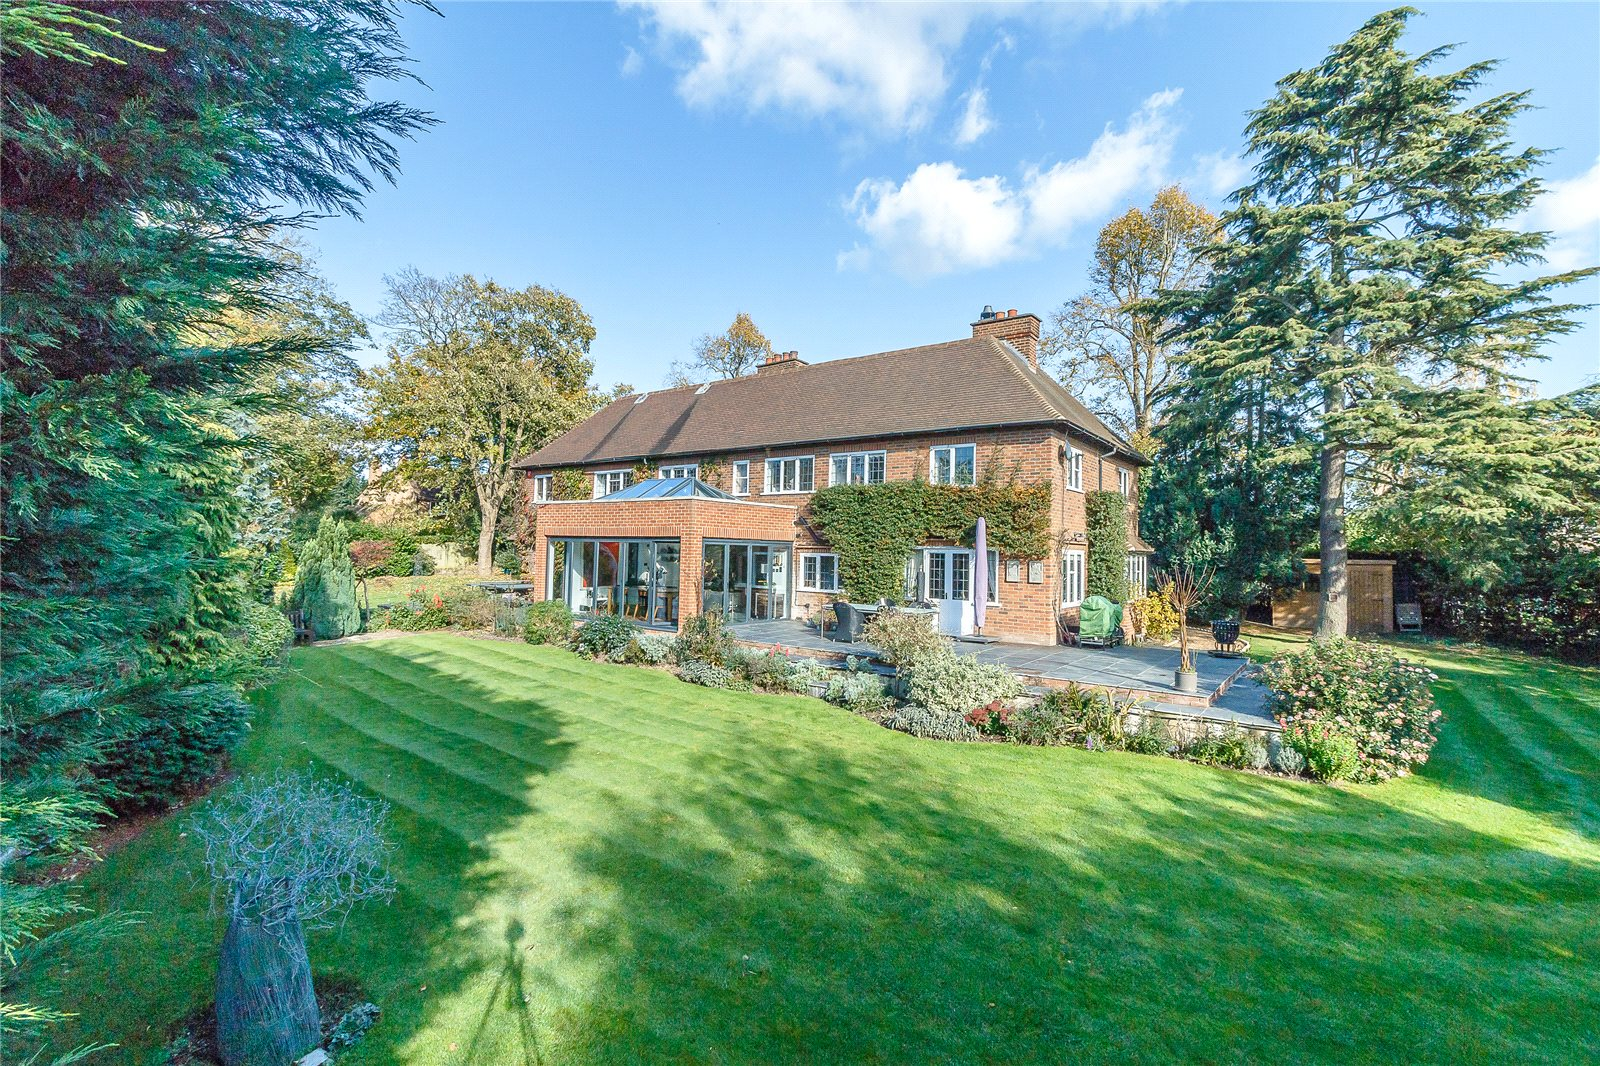 Casa Unifamiliar por un Venta en Hill Waye, Gerrards Cross, Buckinghamshire, SL9 Gerrards Cross, Inglaterra